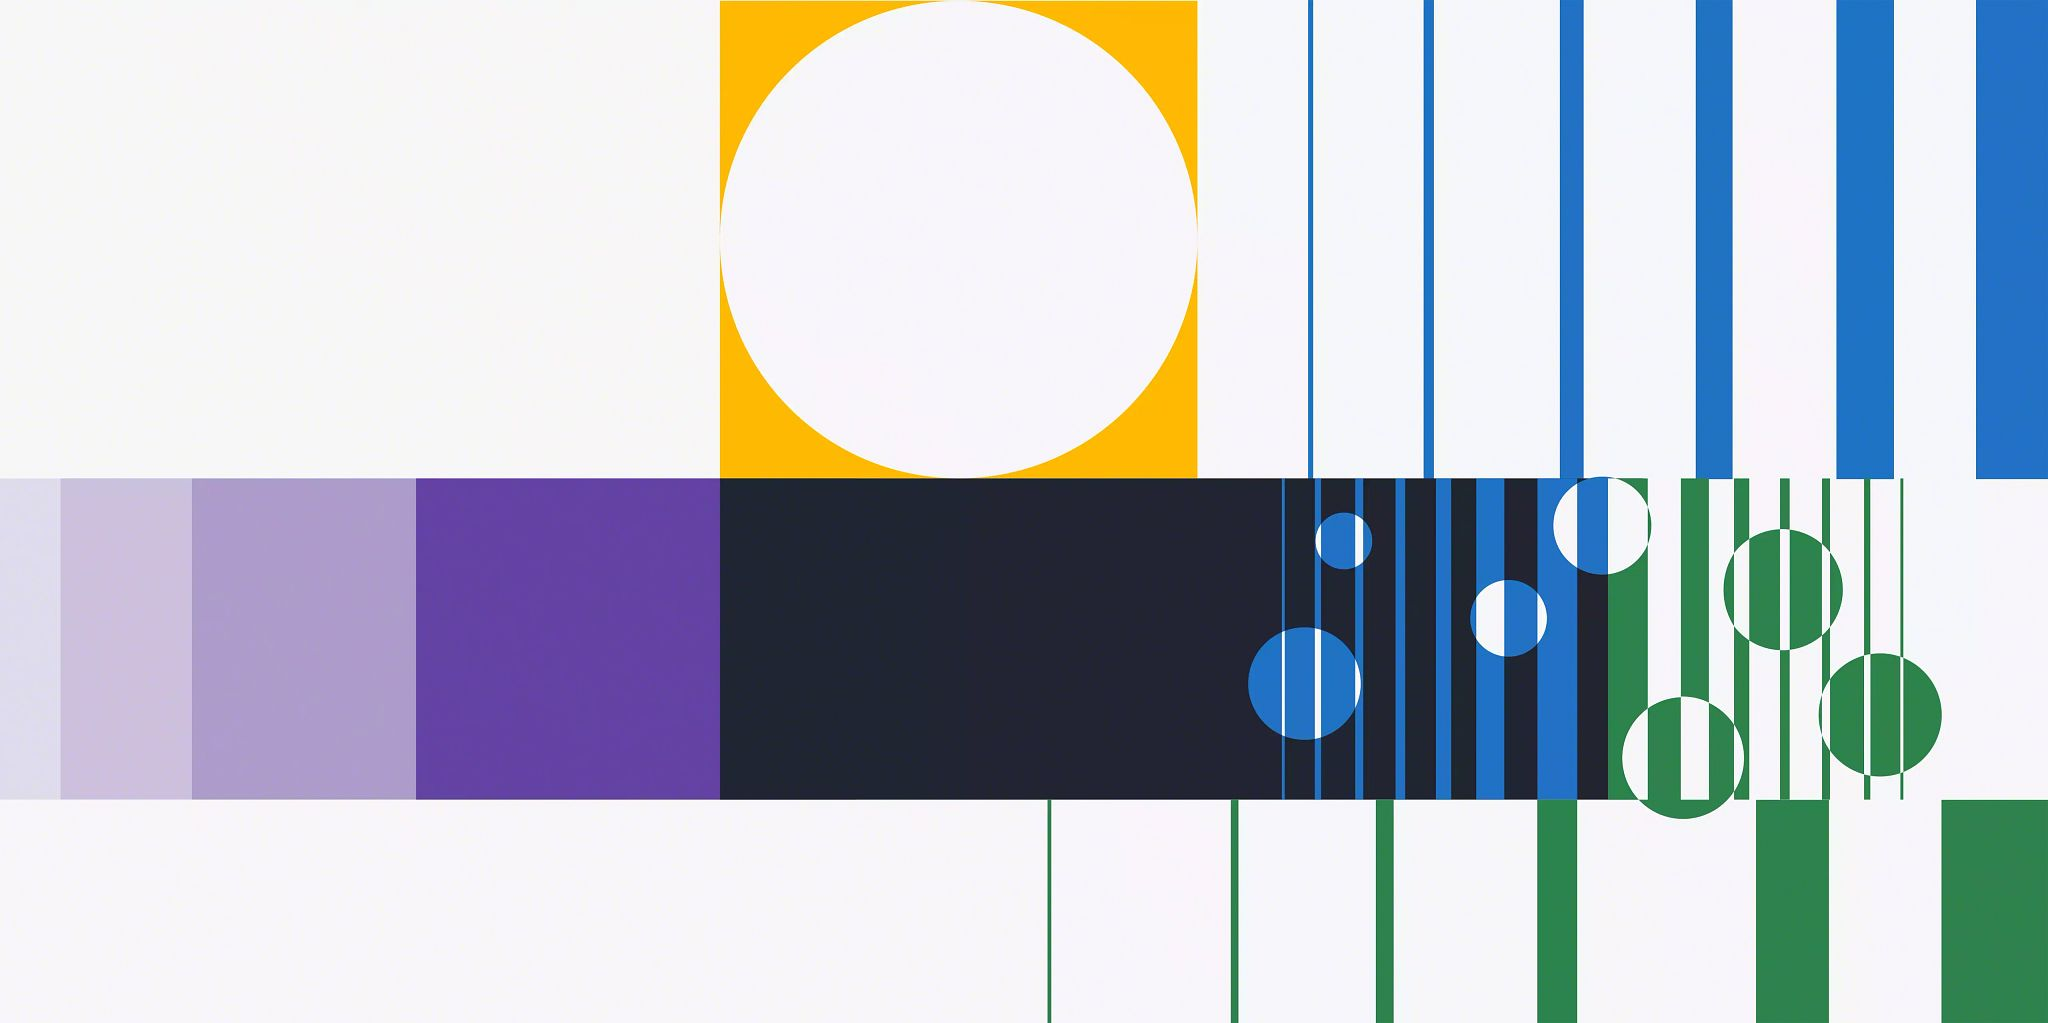 Blog article header image: An illustration with vertical lines in varying colors and widths with circle elements interspersed in the graphic.